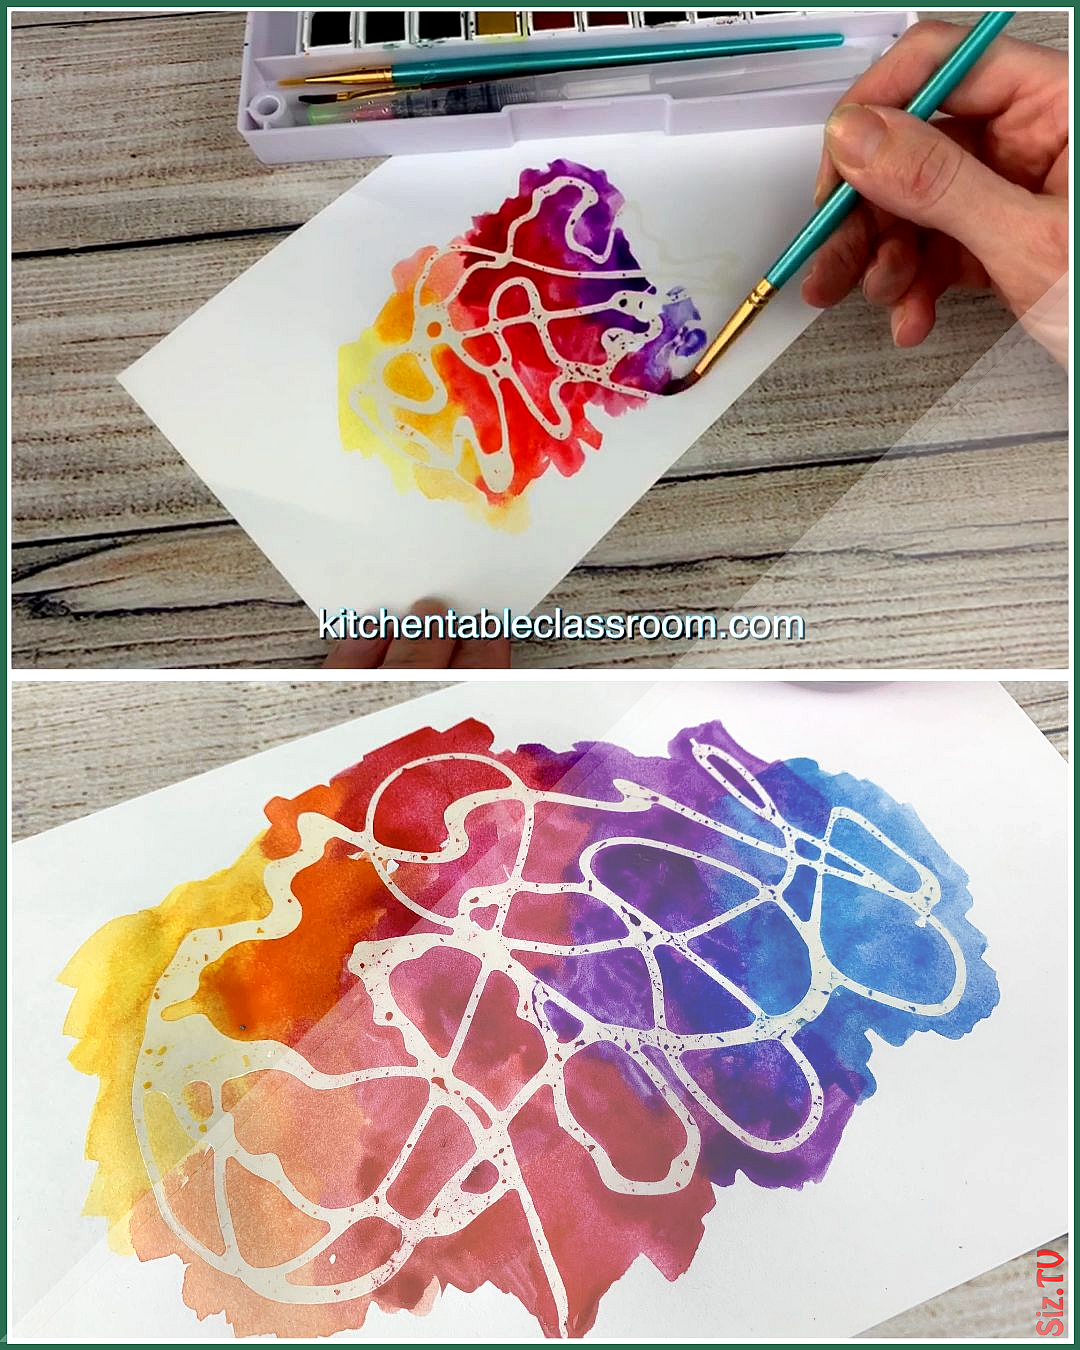 Watercolor for Kids- 9 Watercolor Techniques for Any Age  The Kitchen Table Classroom Watercolor fo